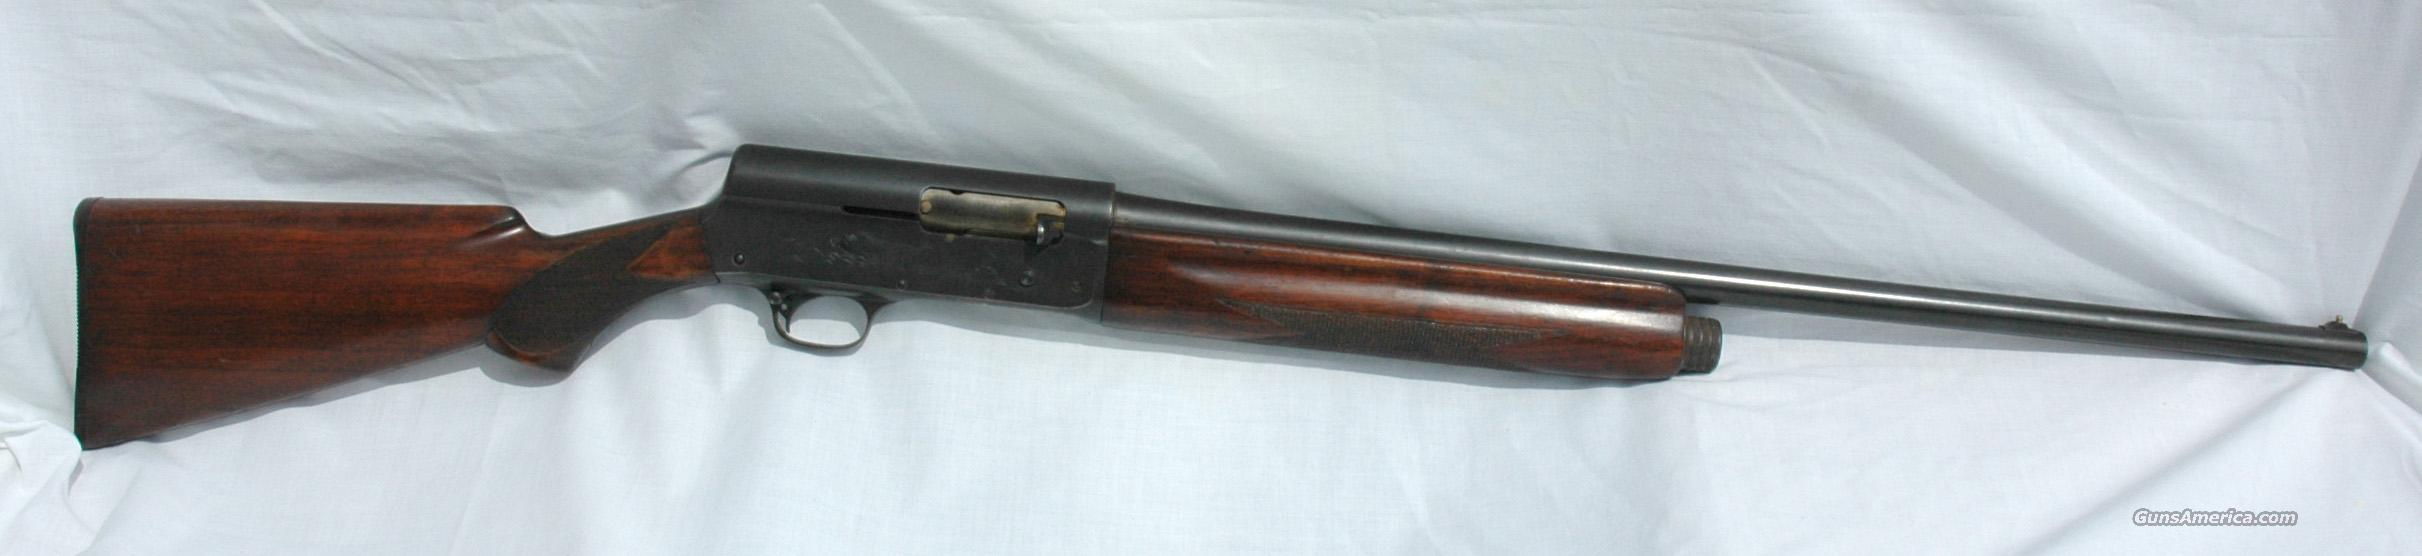 Remington Model 11 - 16 GA  Guns > Shotguns > Remington Shotguns  > Single Barrel